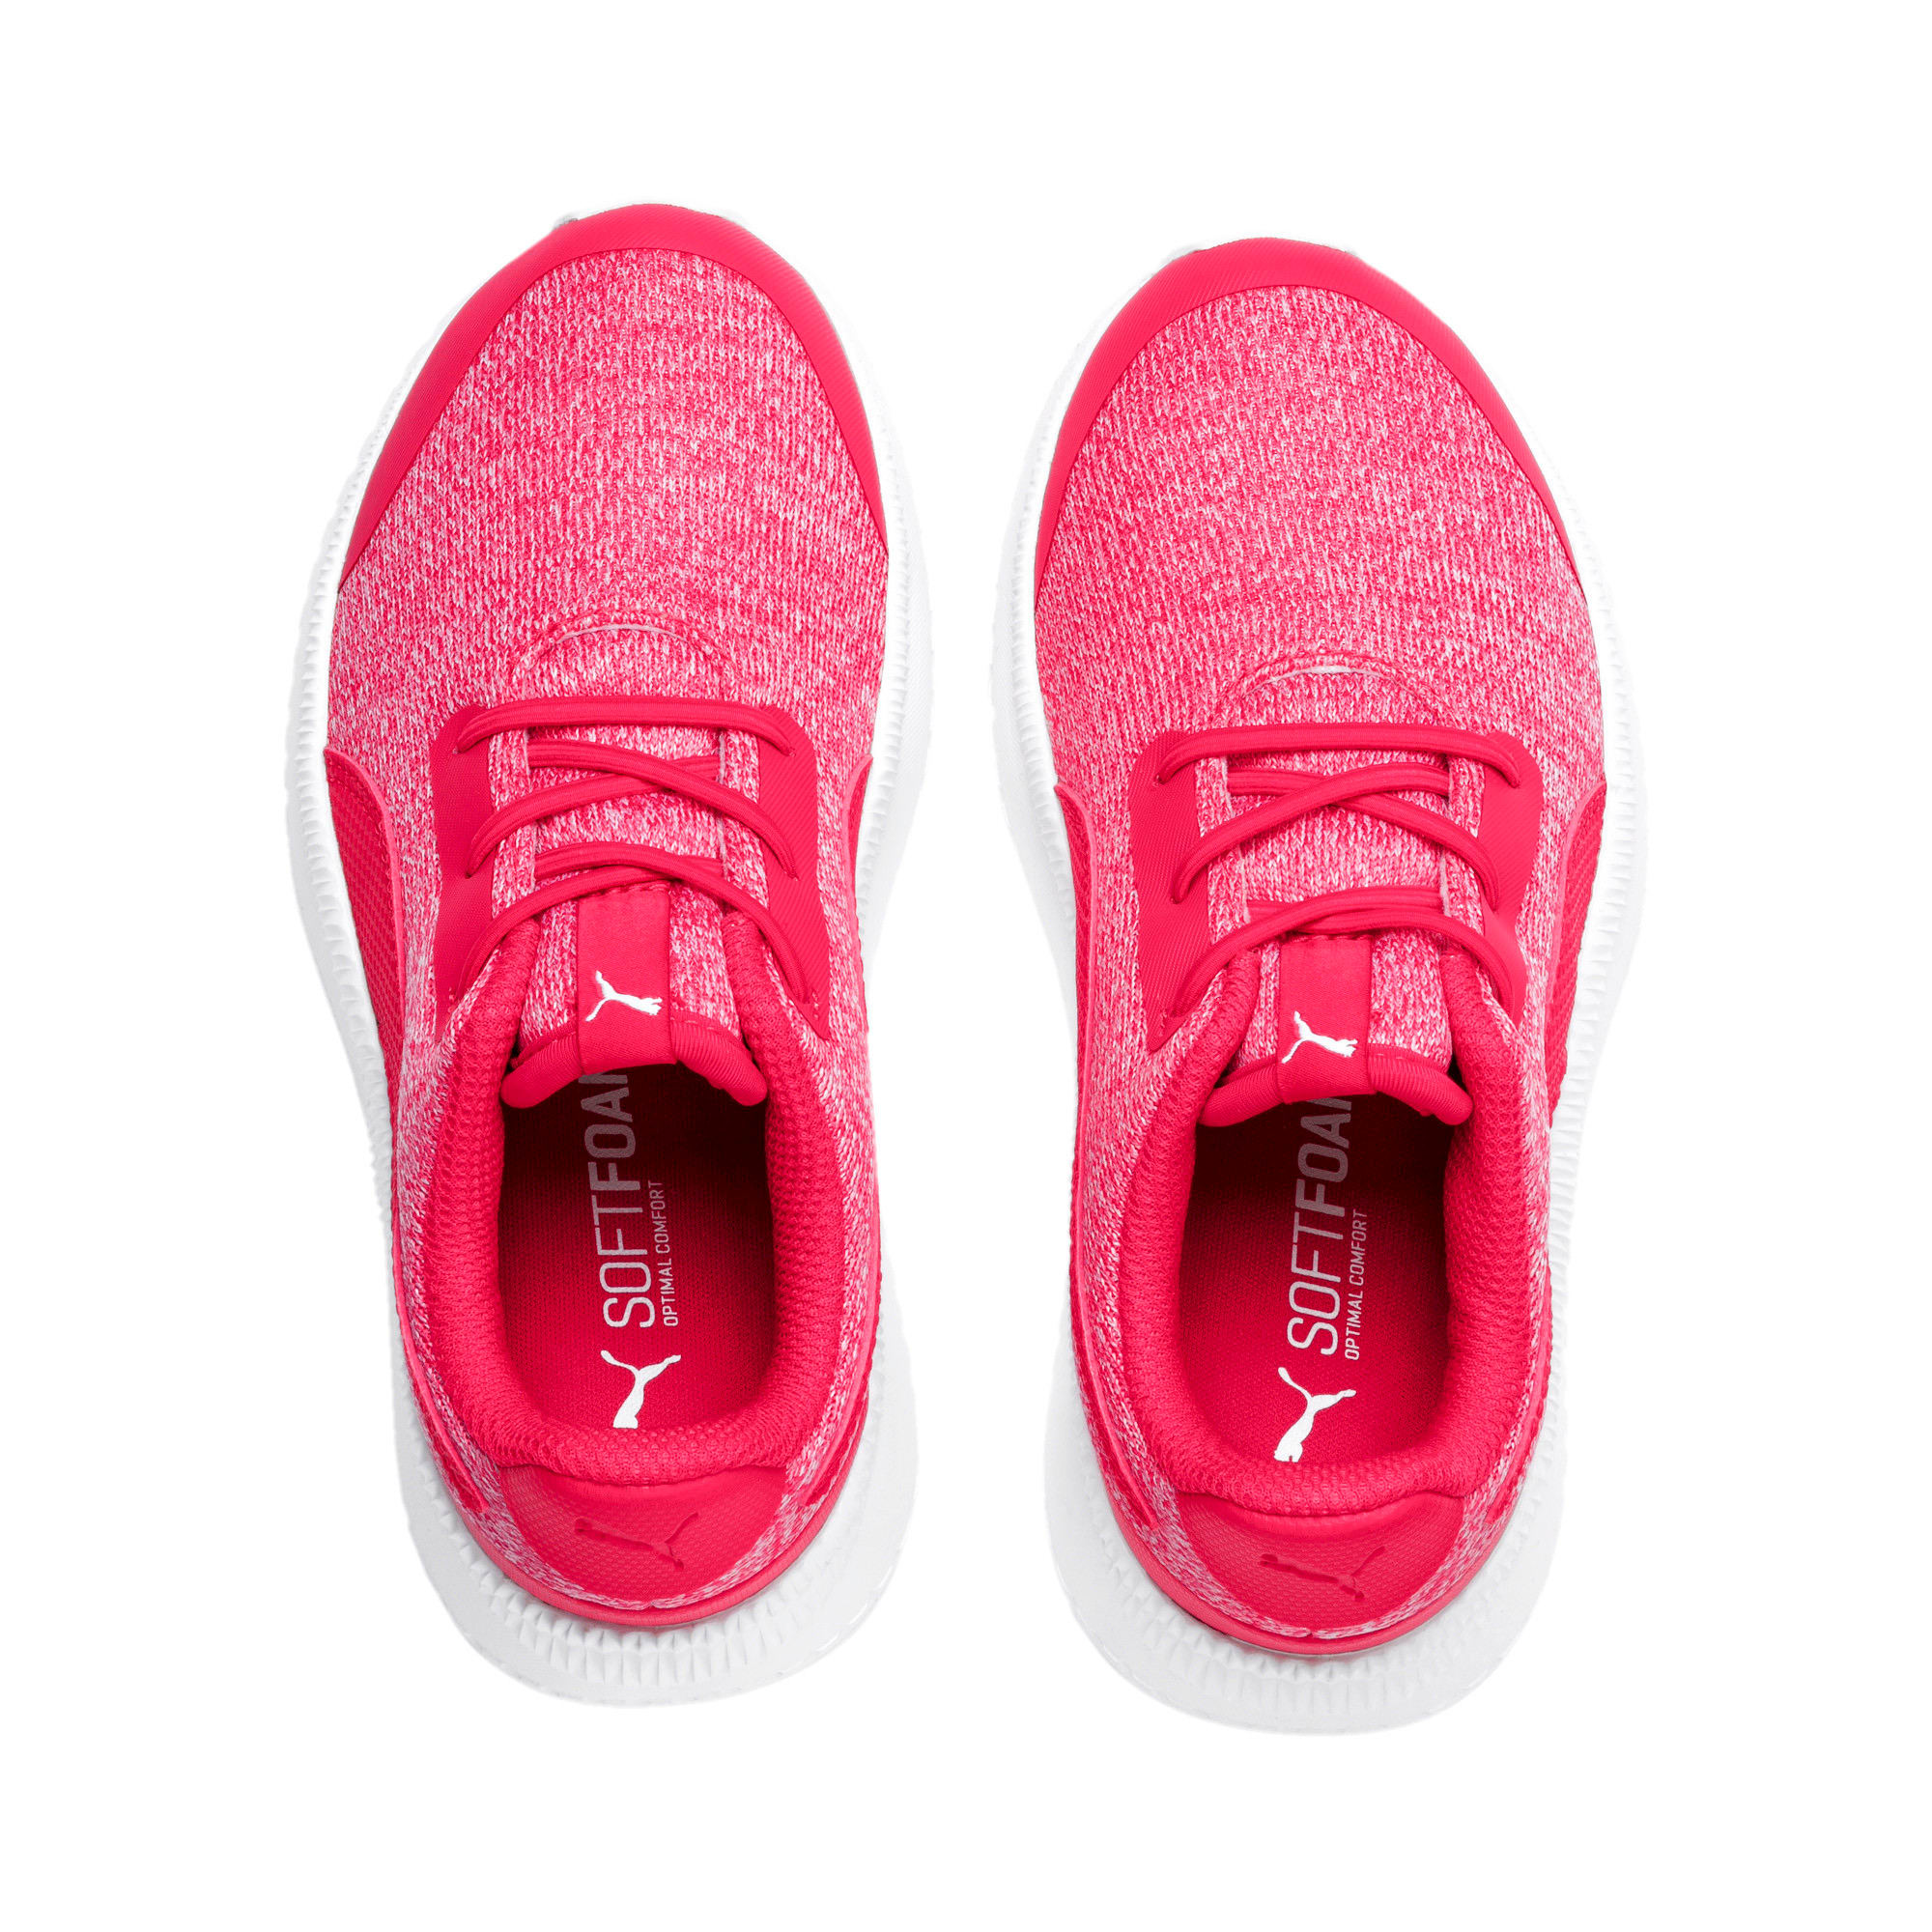 Thumbnail 6 of Pacer Next FS Knit AC Kids Sneaker, Nrgy Rose-Puma White, medium